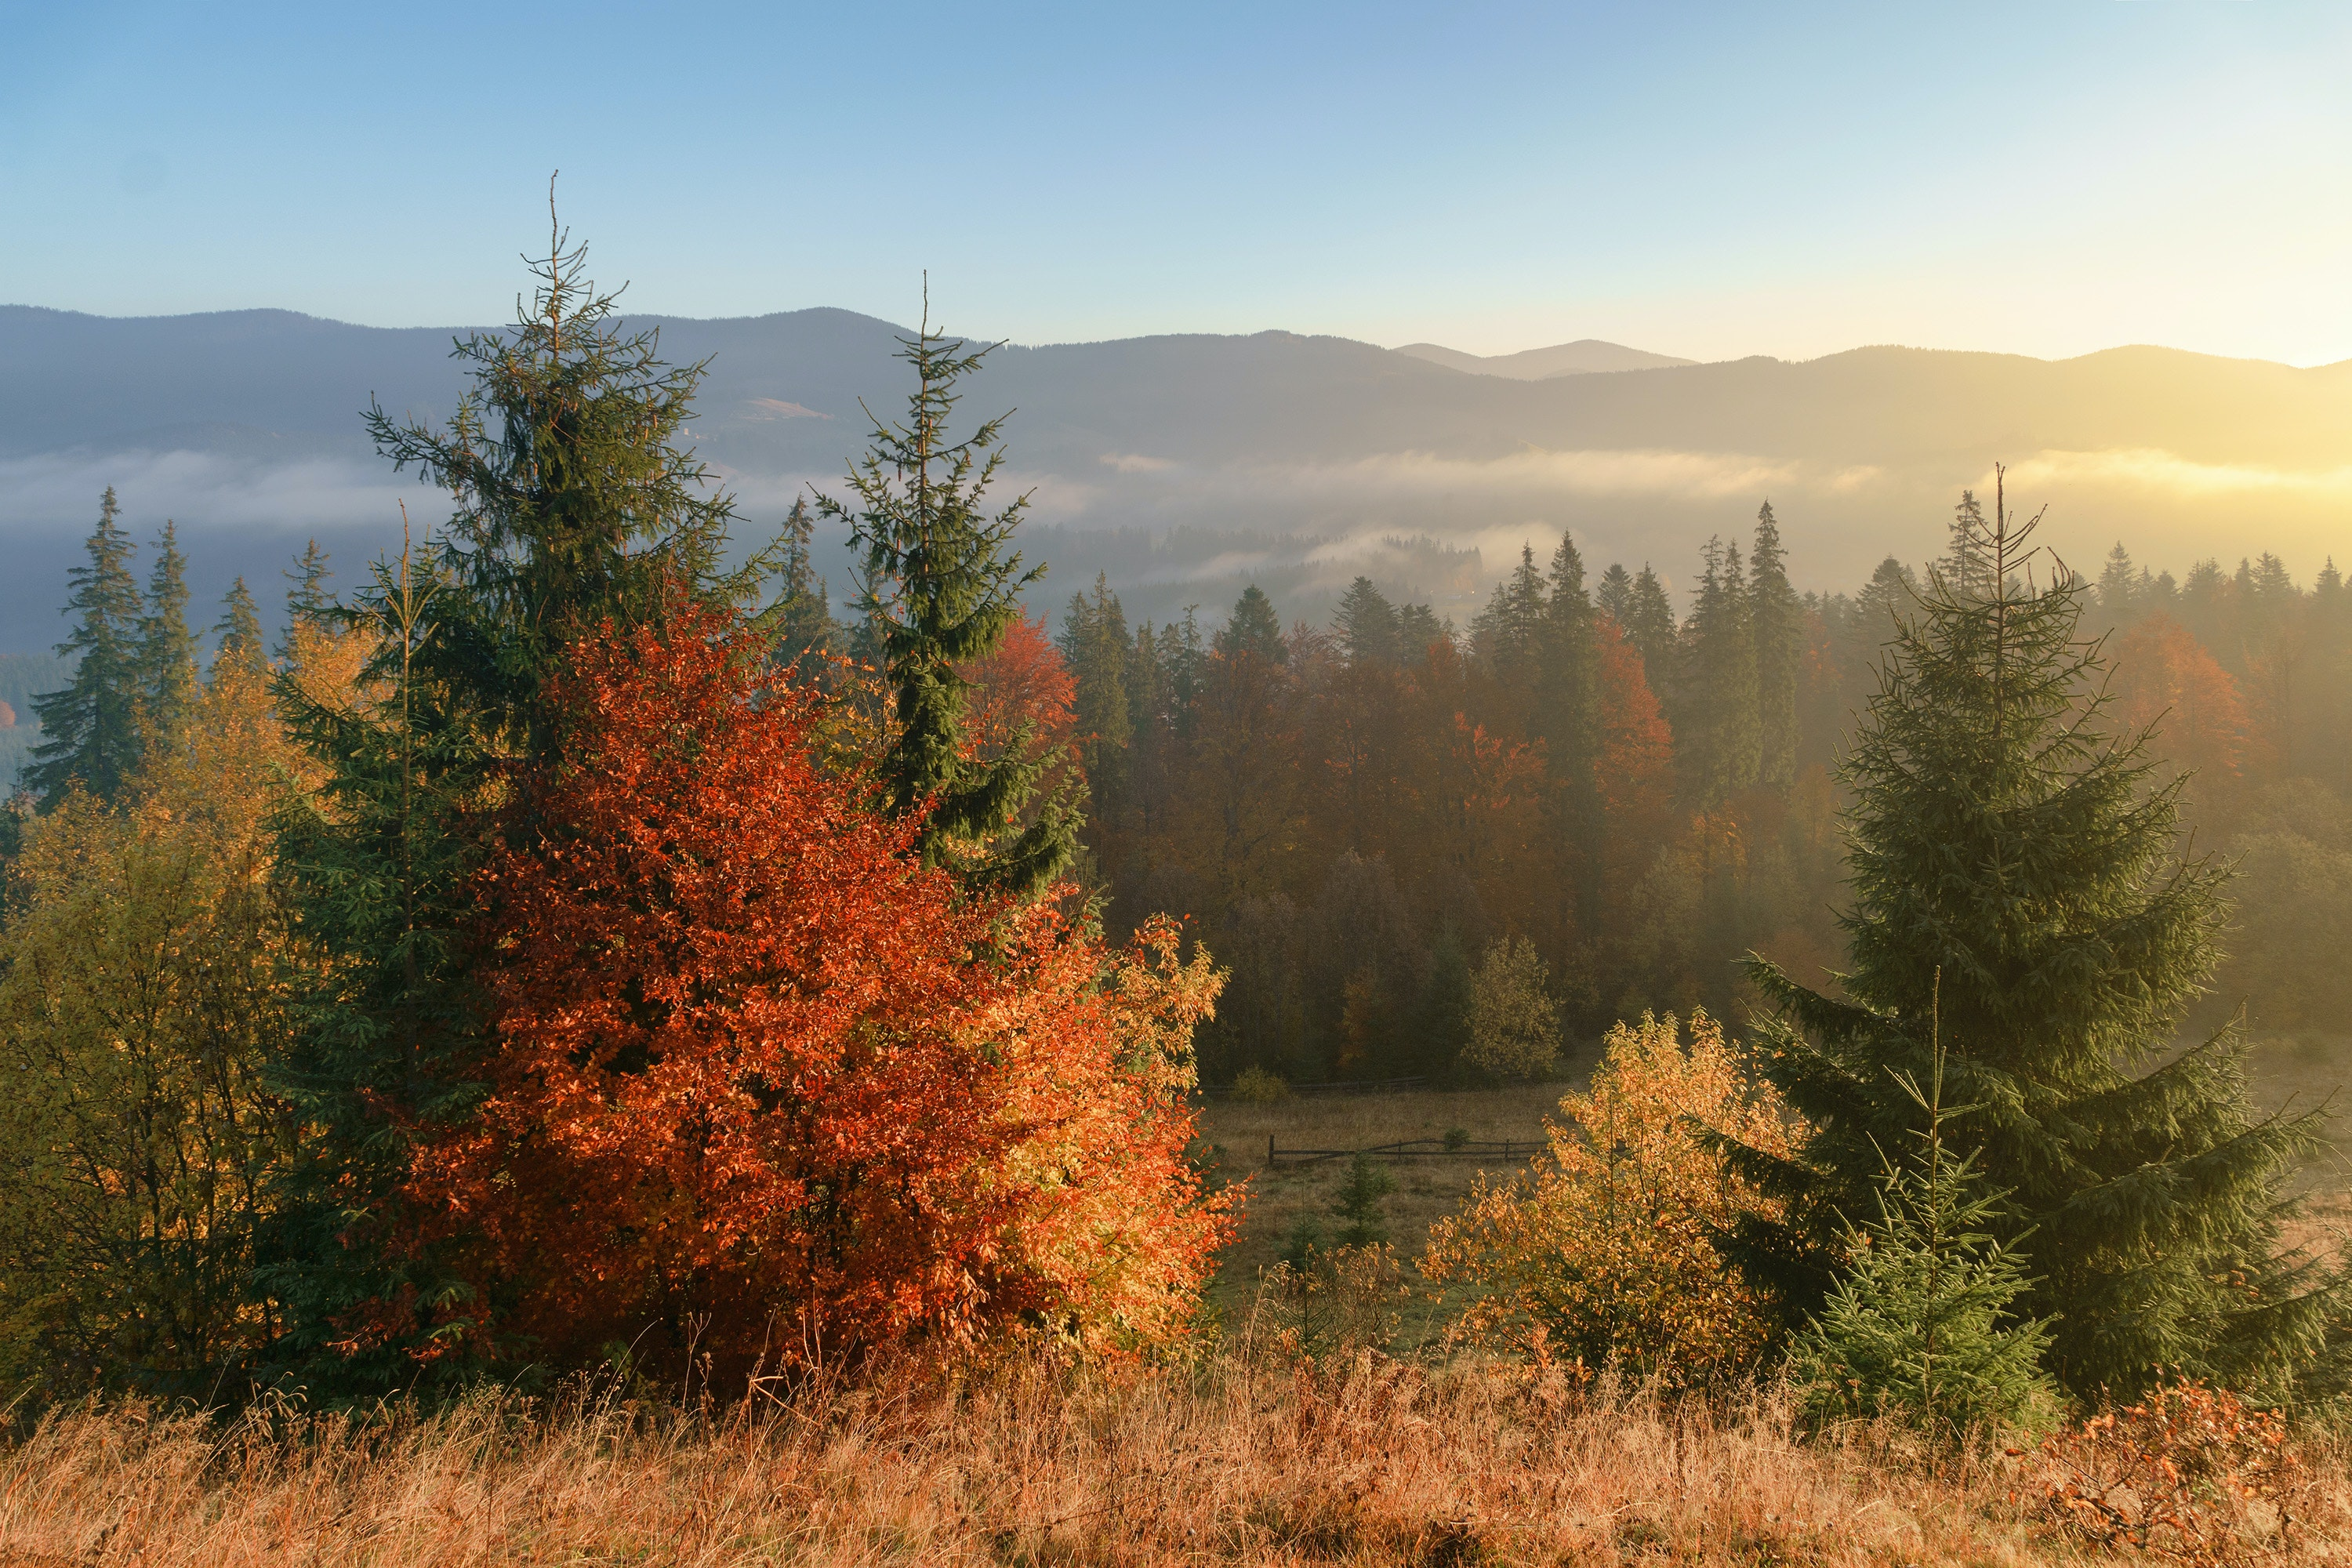 With over 100 species of trees, Great Smoky Mountains National Park boasts an impressive variety of fall color.